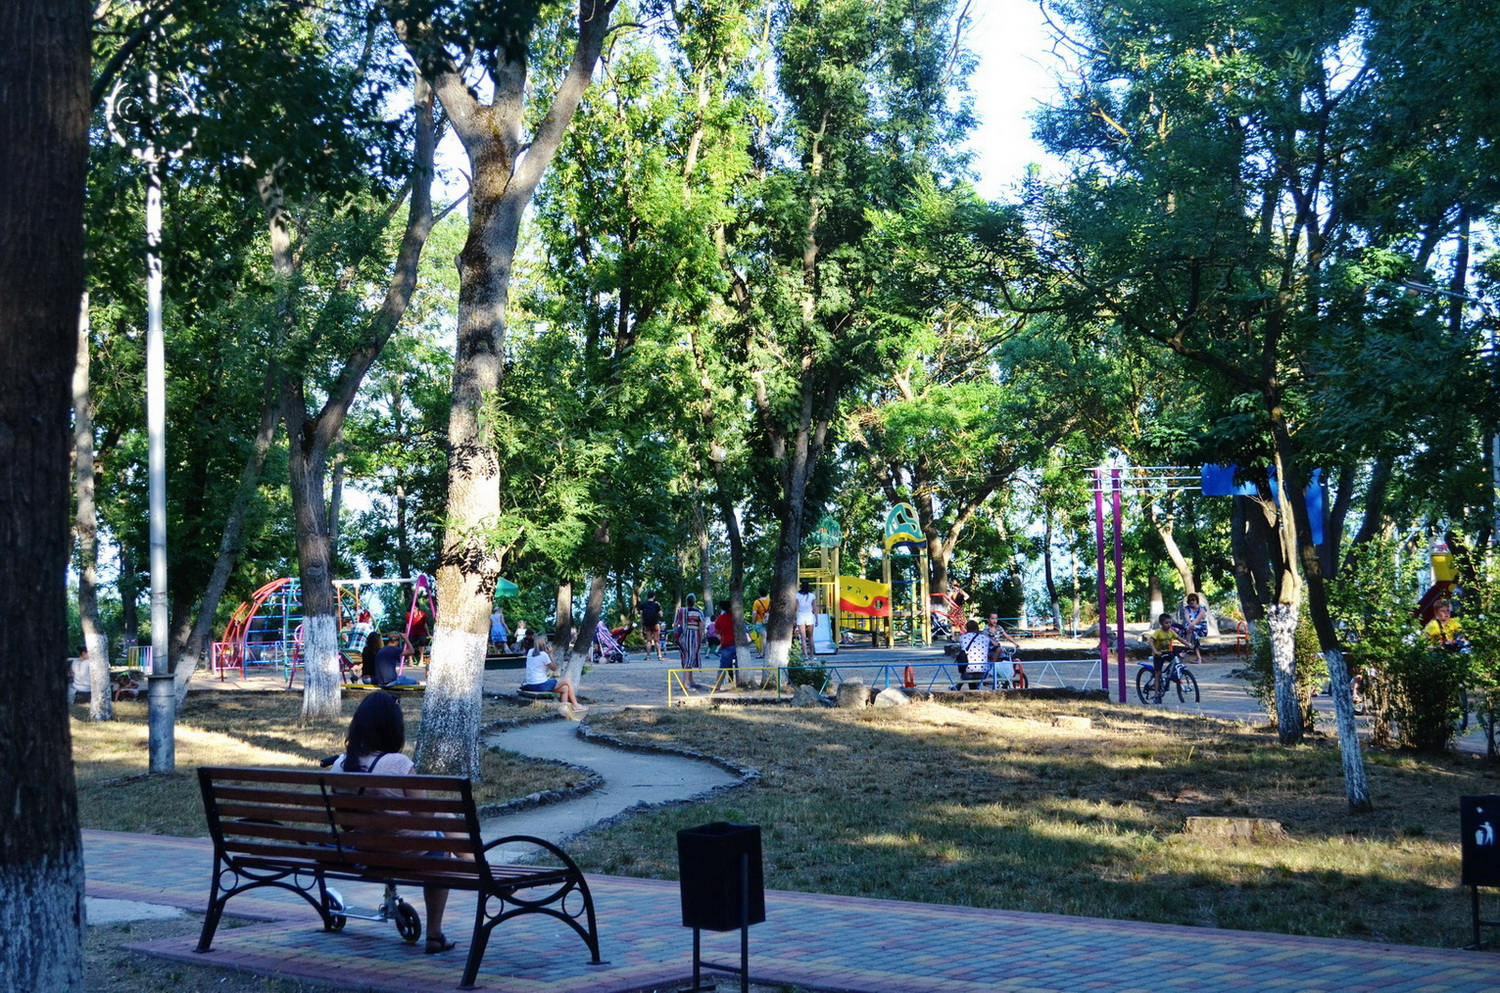 kerch arshincevo 26 06 2020 park 17